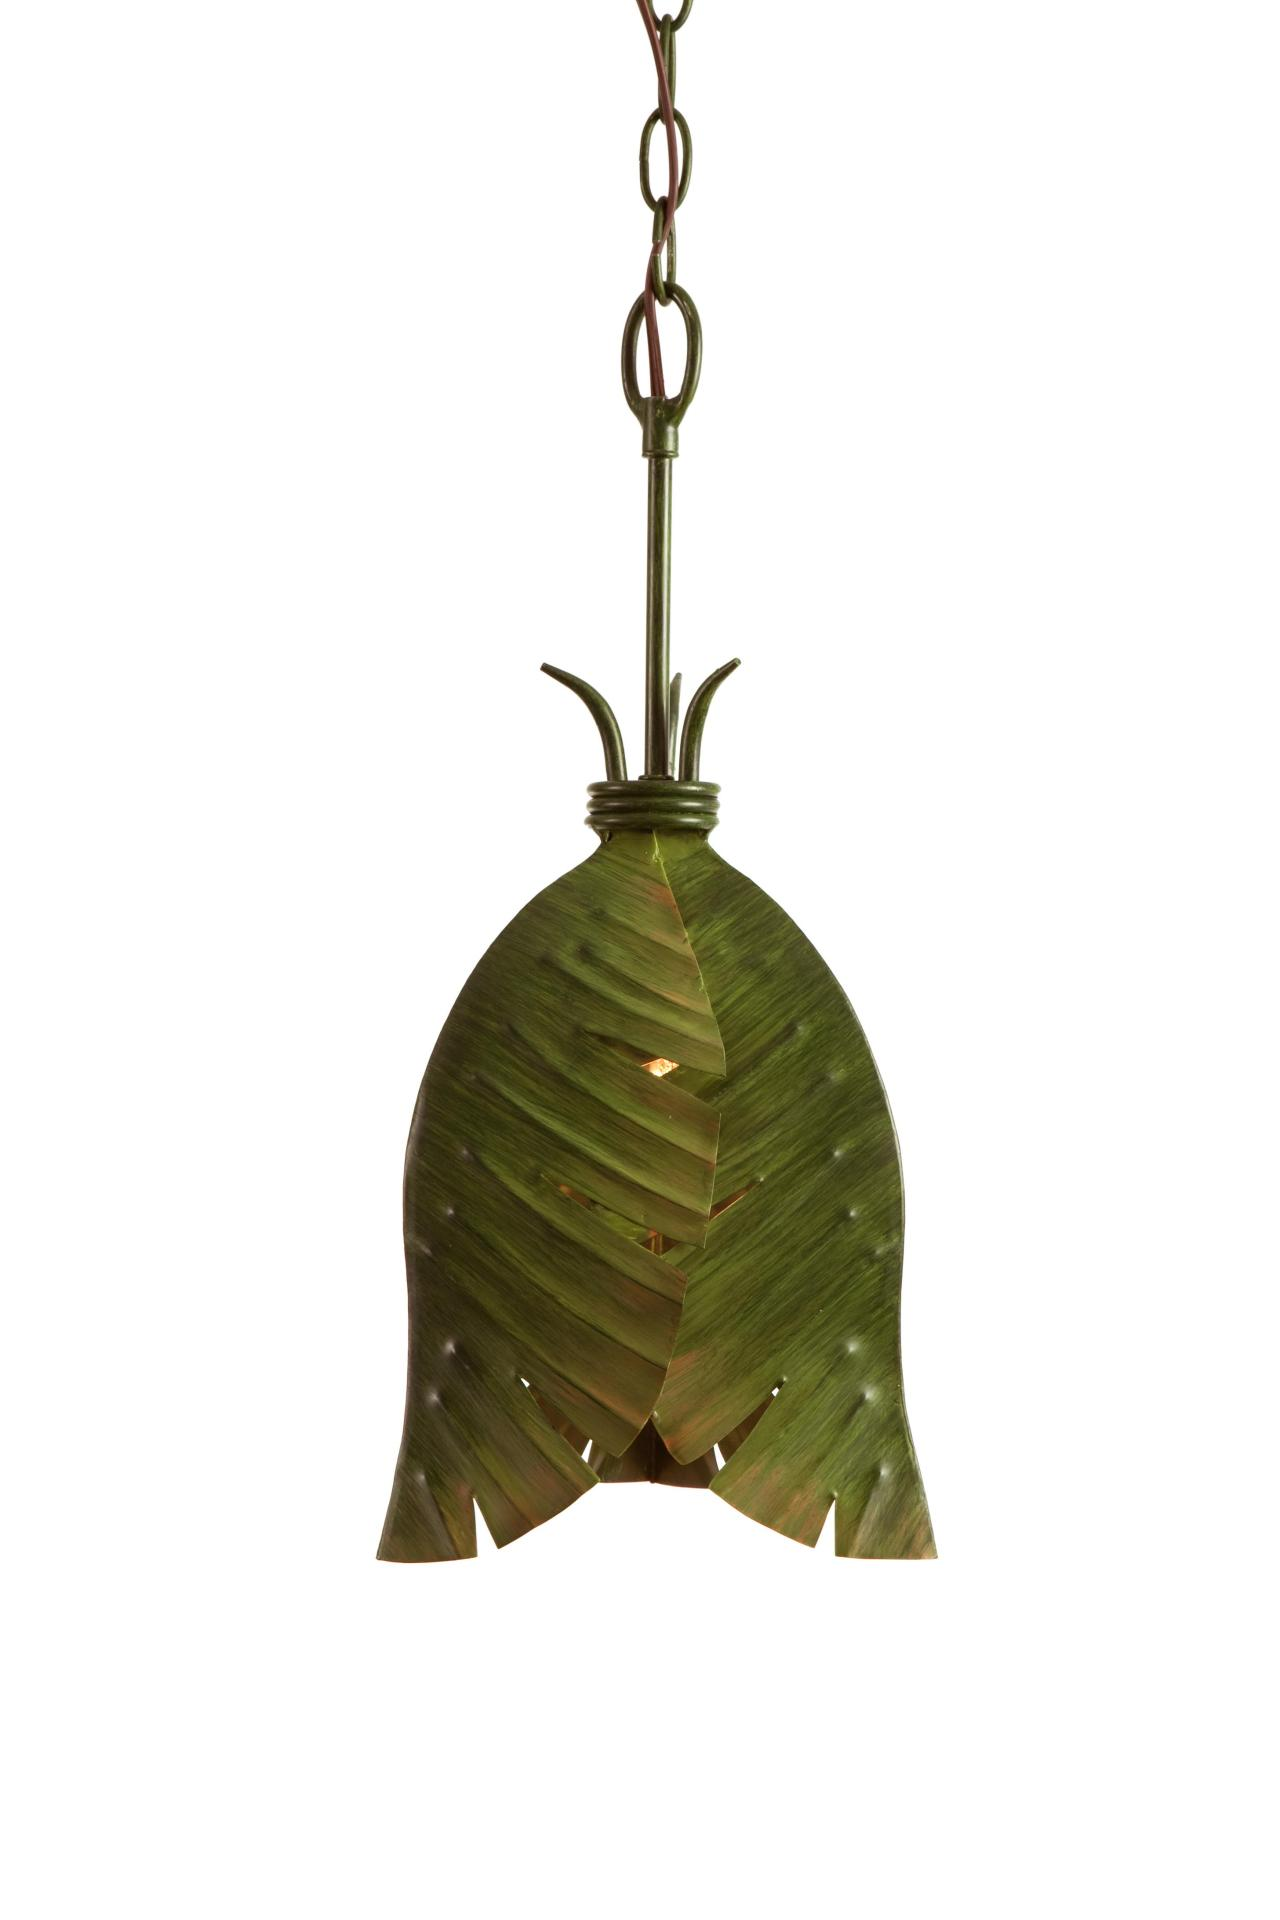 Product of the Week:  Varaluz 901M01 Banana Leaf Mini PendantFind it here:  http://www.elitefixtures.com/index.cfm/Varaluz-Lighting-901M01-Banana-Leaf-Minipendant-Banana-Leaf/p127394